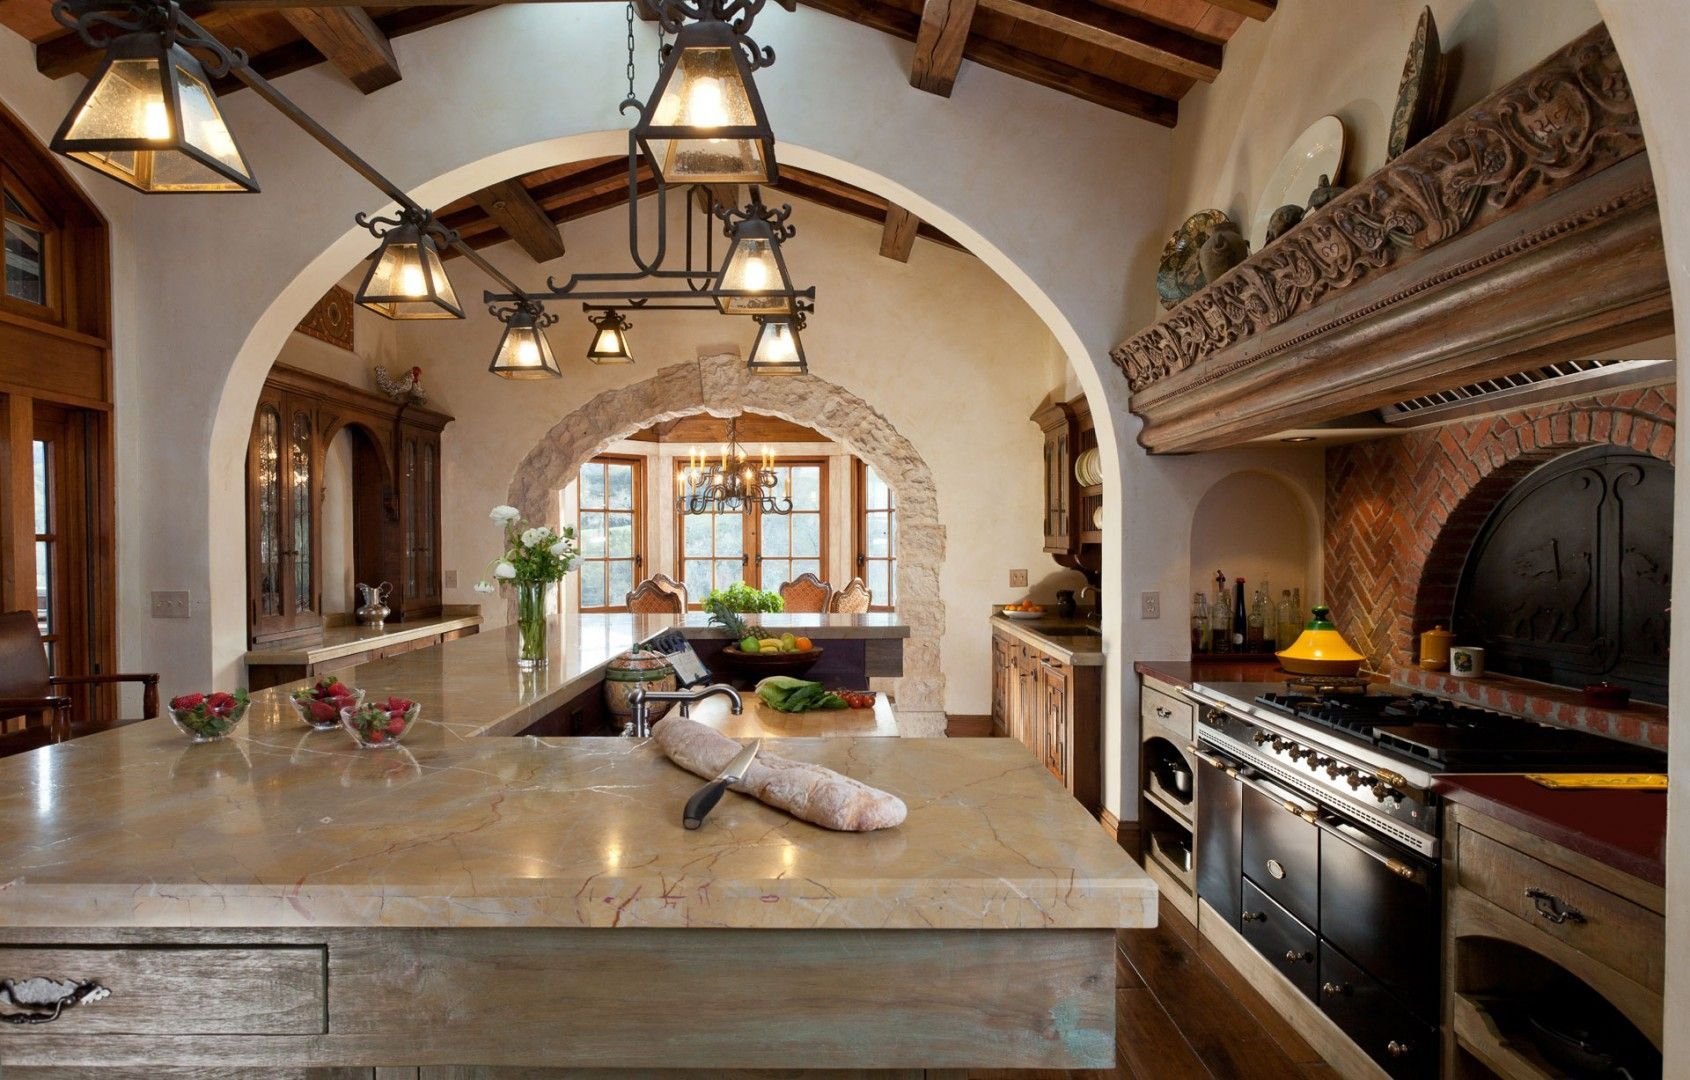 spanish colonial kitchens - a little dark, but love the